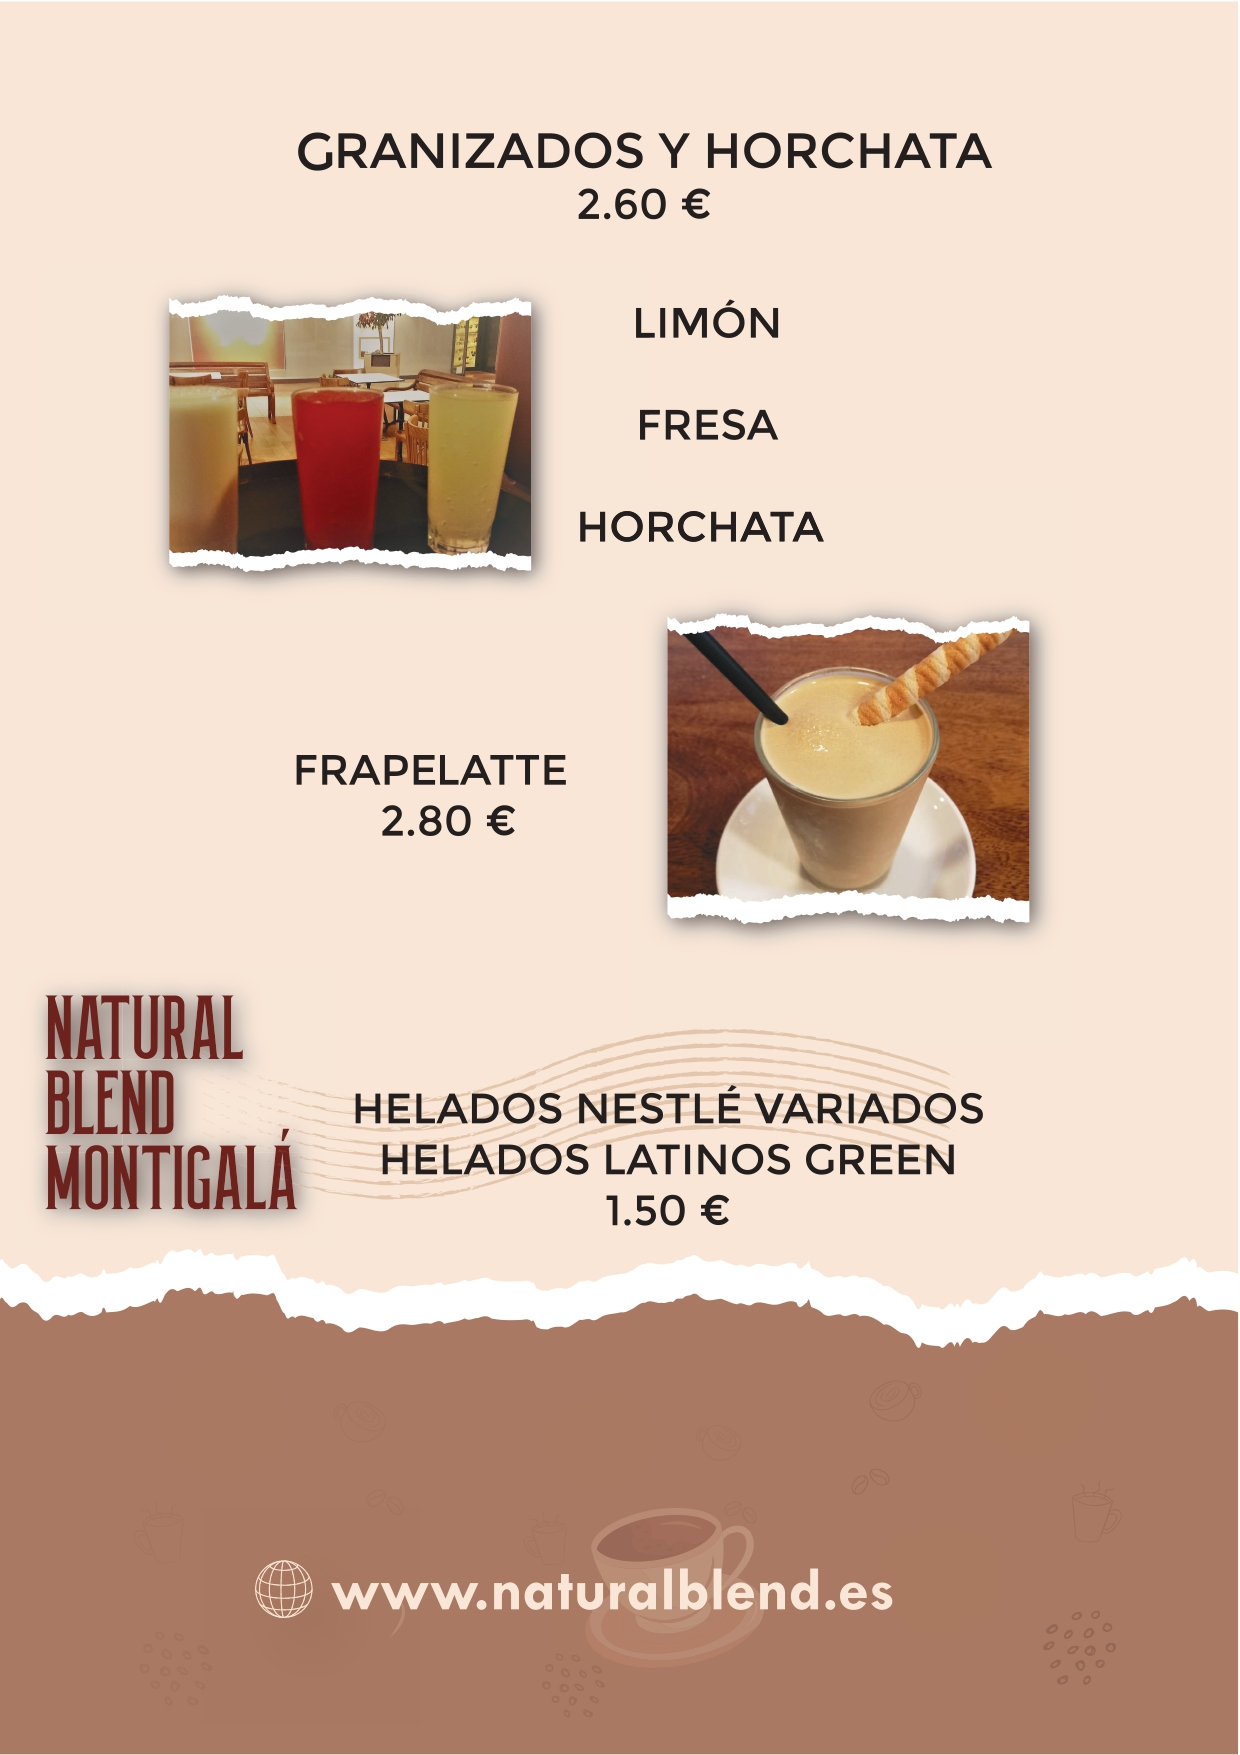 Carta-Natural-Blend-Montigala.pdf_page-0005